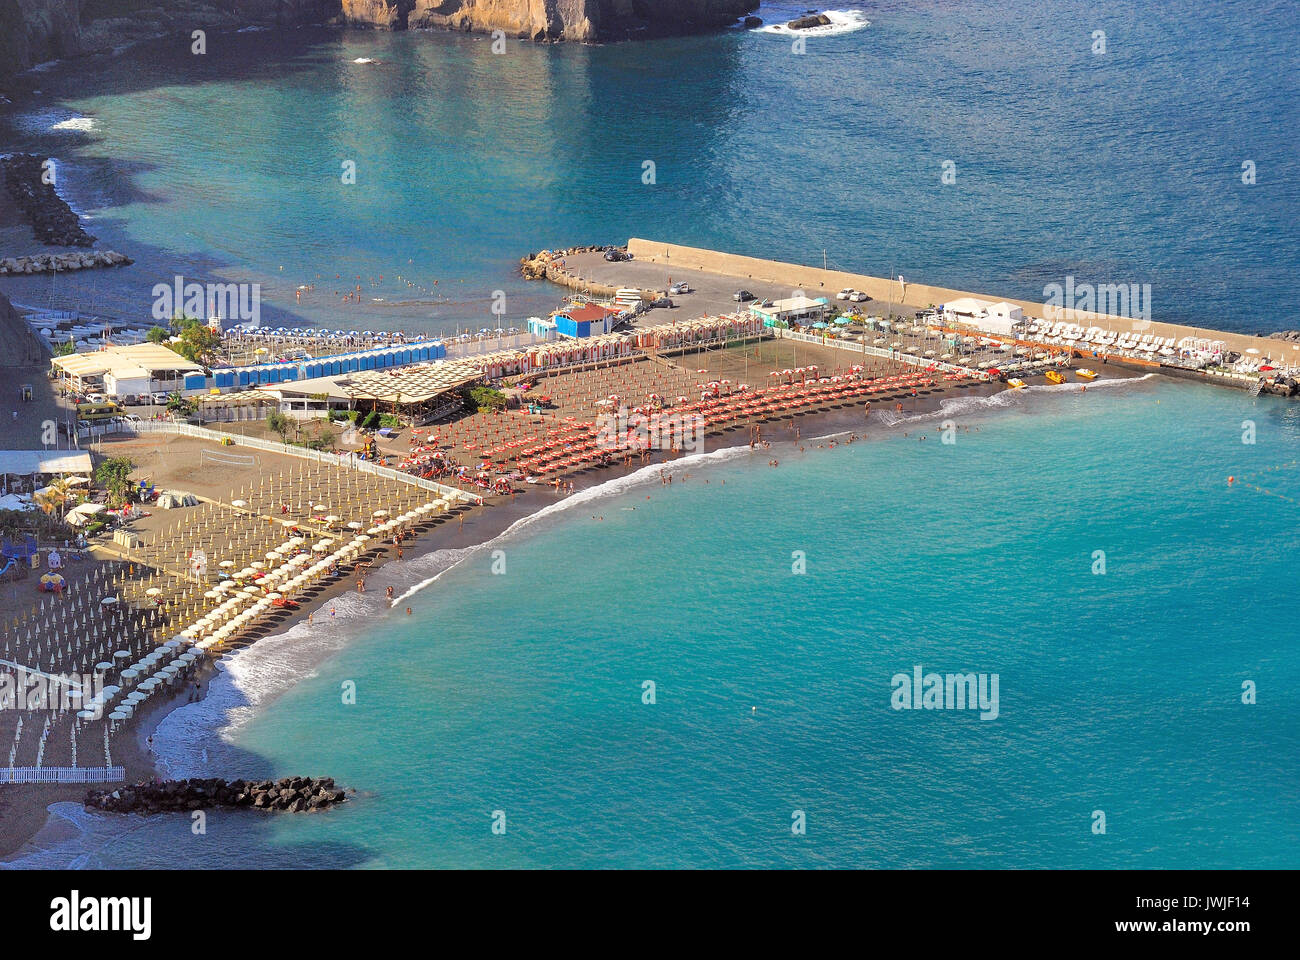 Gulf of Naples. A view of Sorrento coast, In the foreground Meta di Sorrento town and its beach - Stock Image